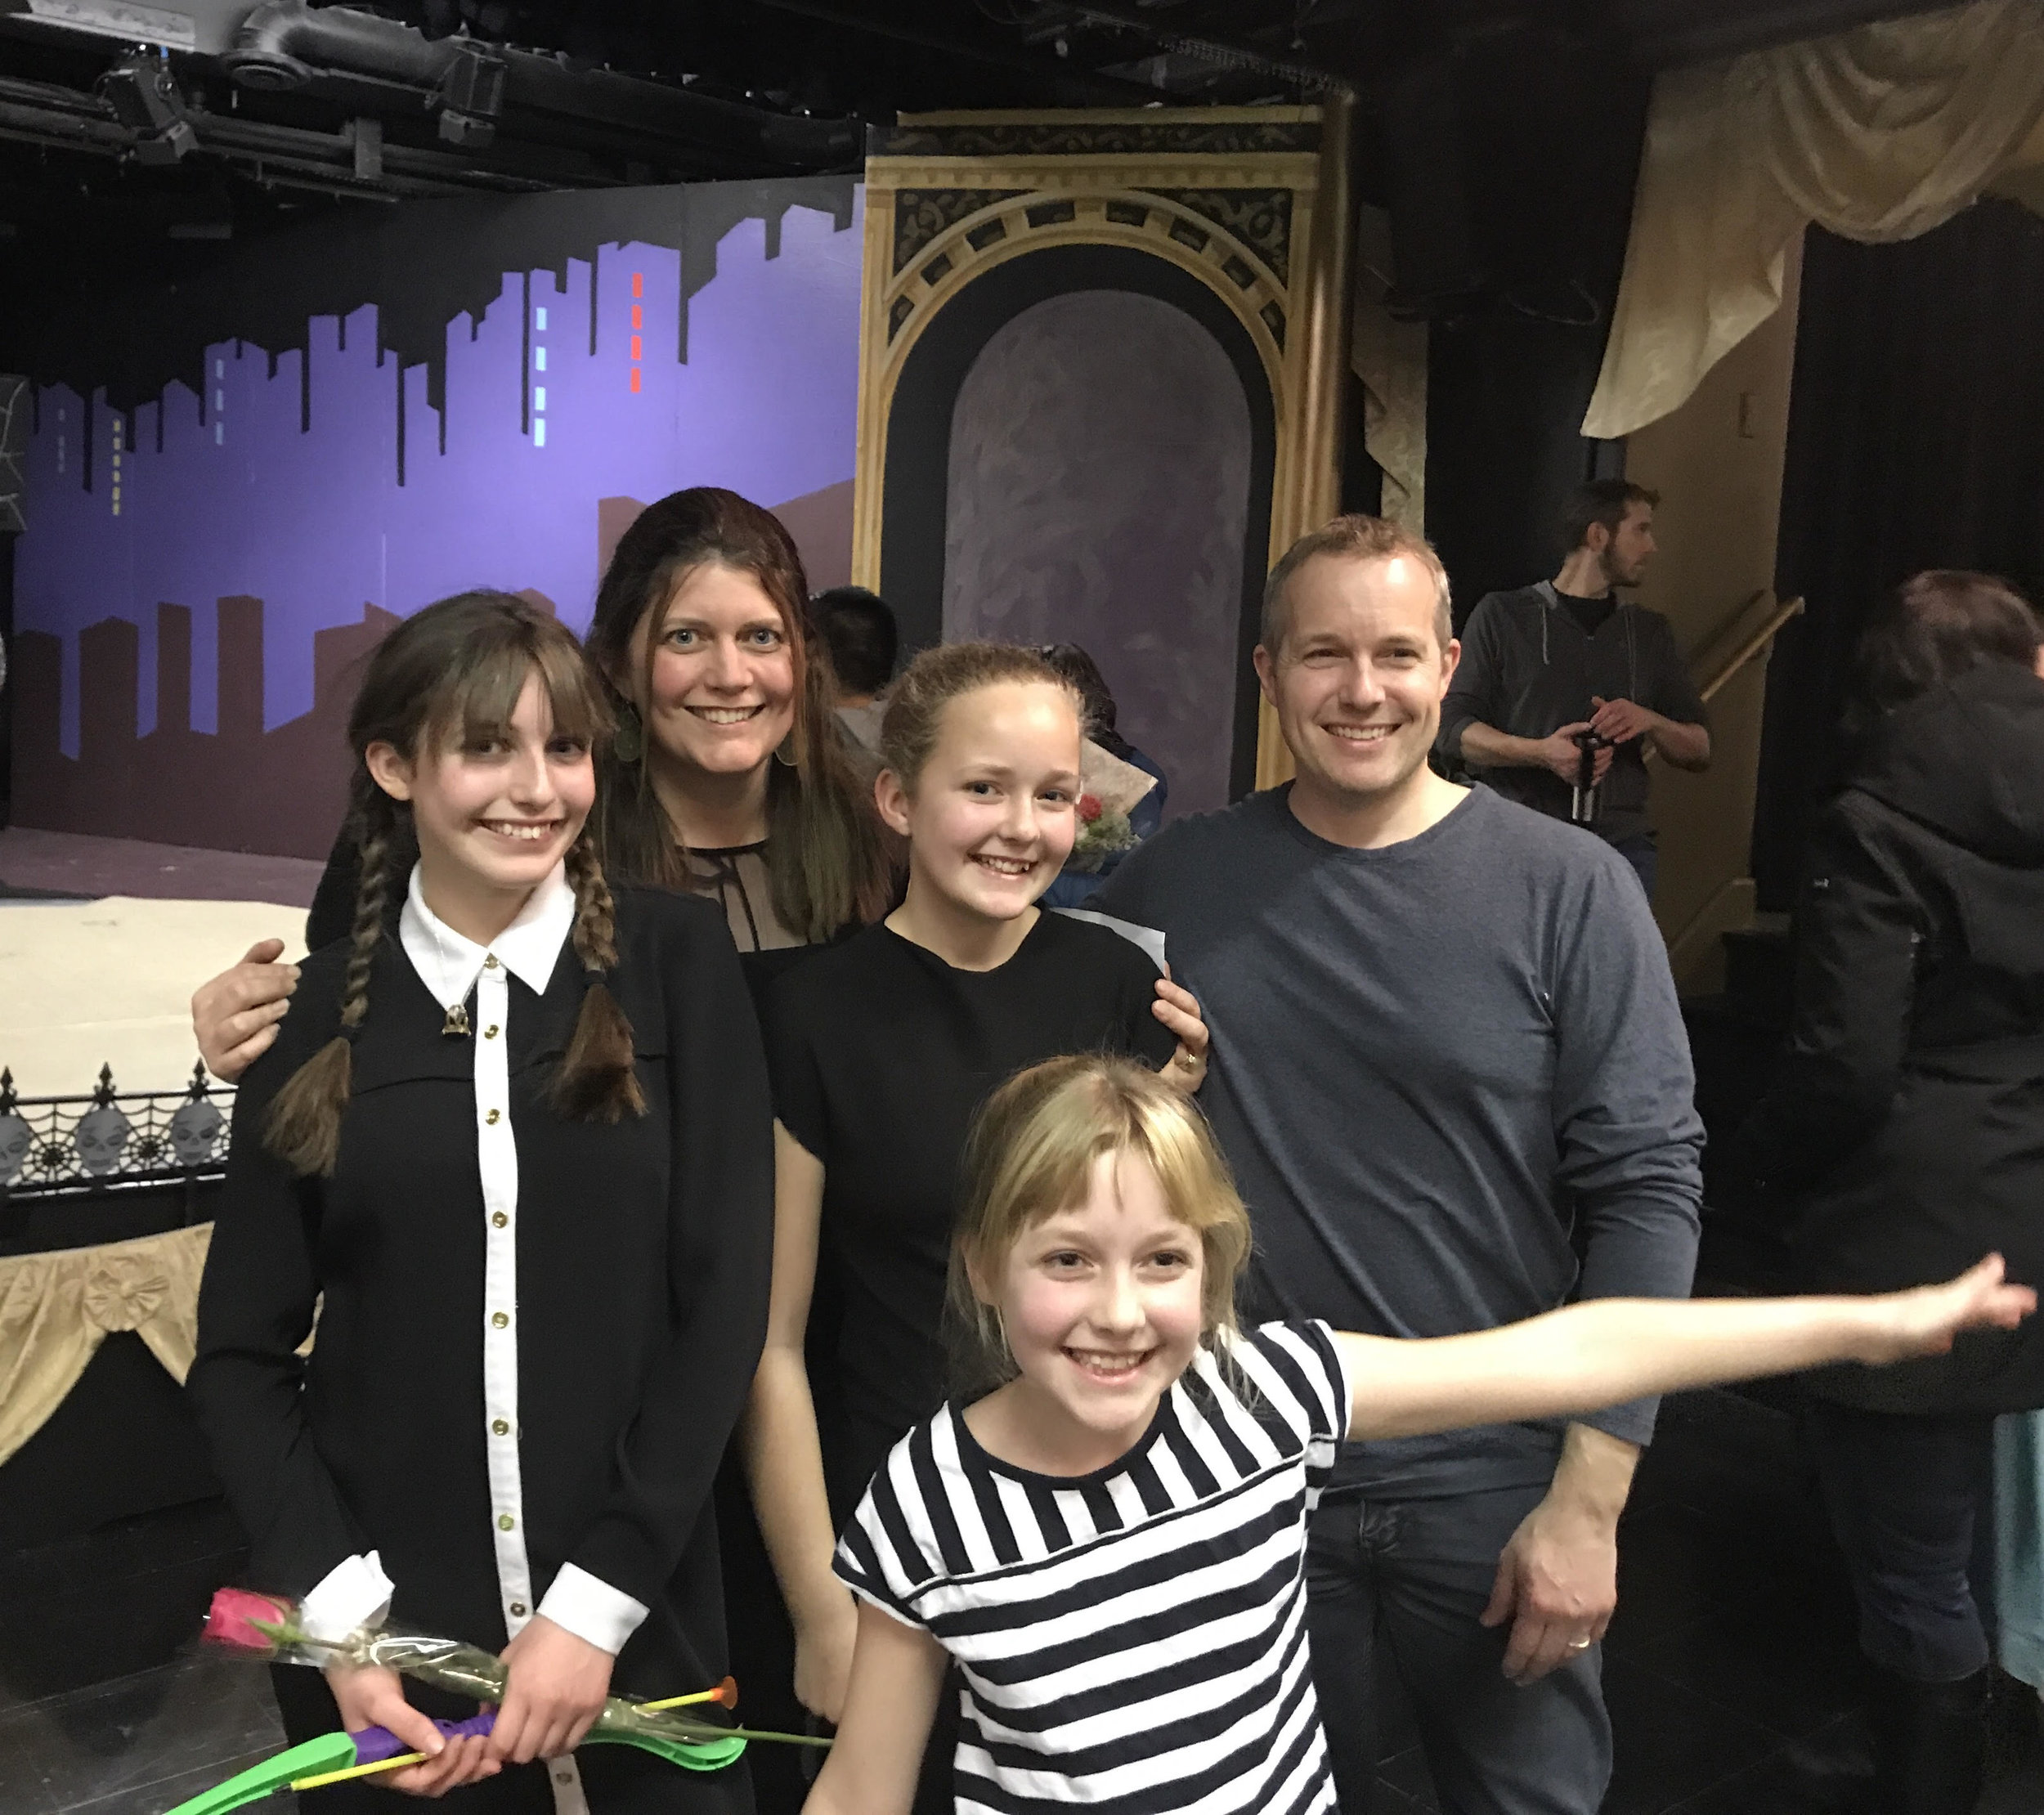 The Langille Family enjoy both attending local performances - as well as being part of them!